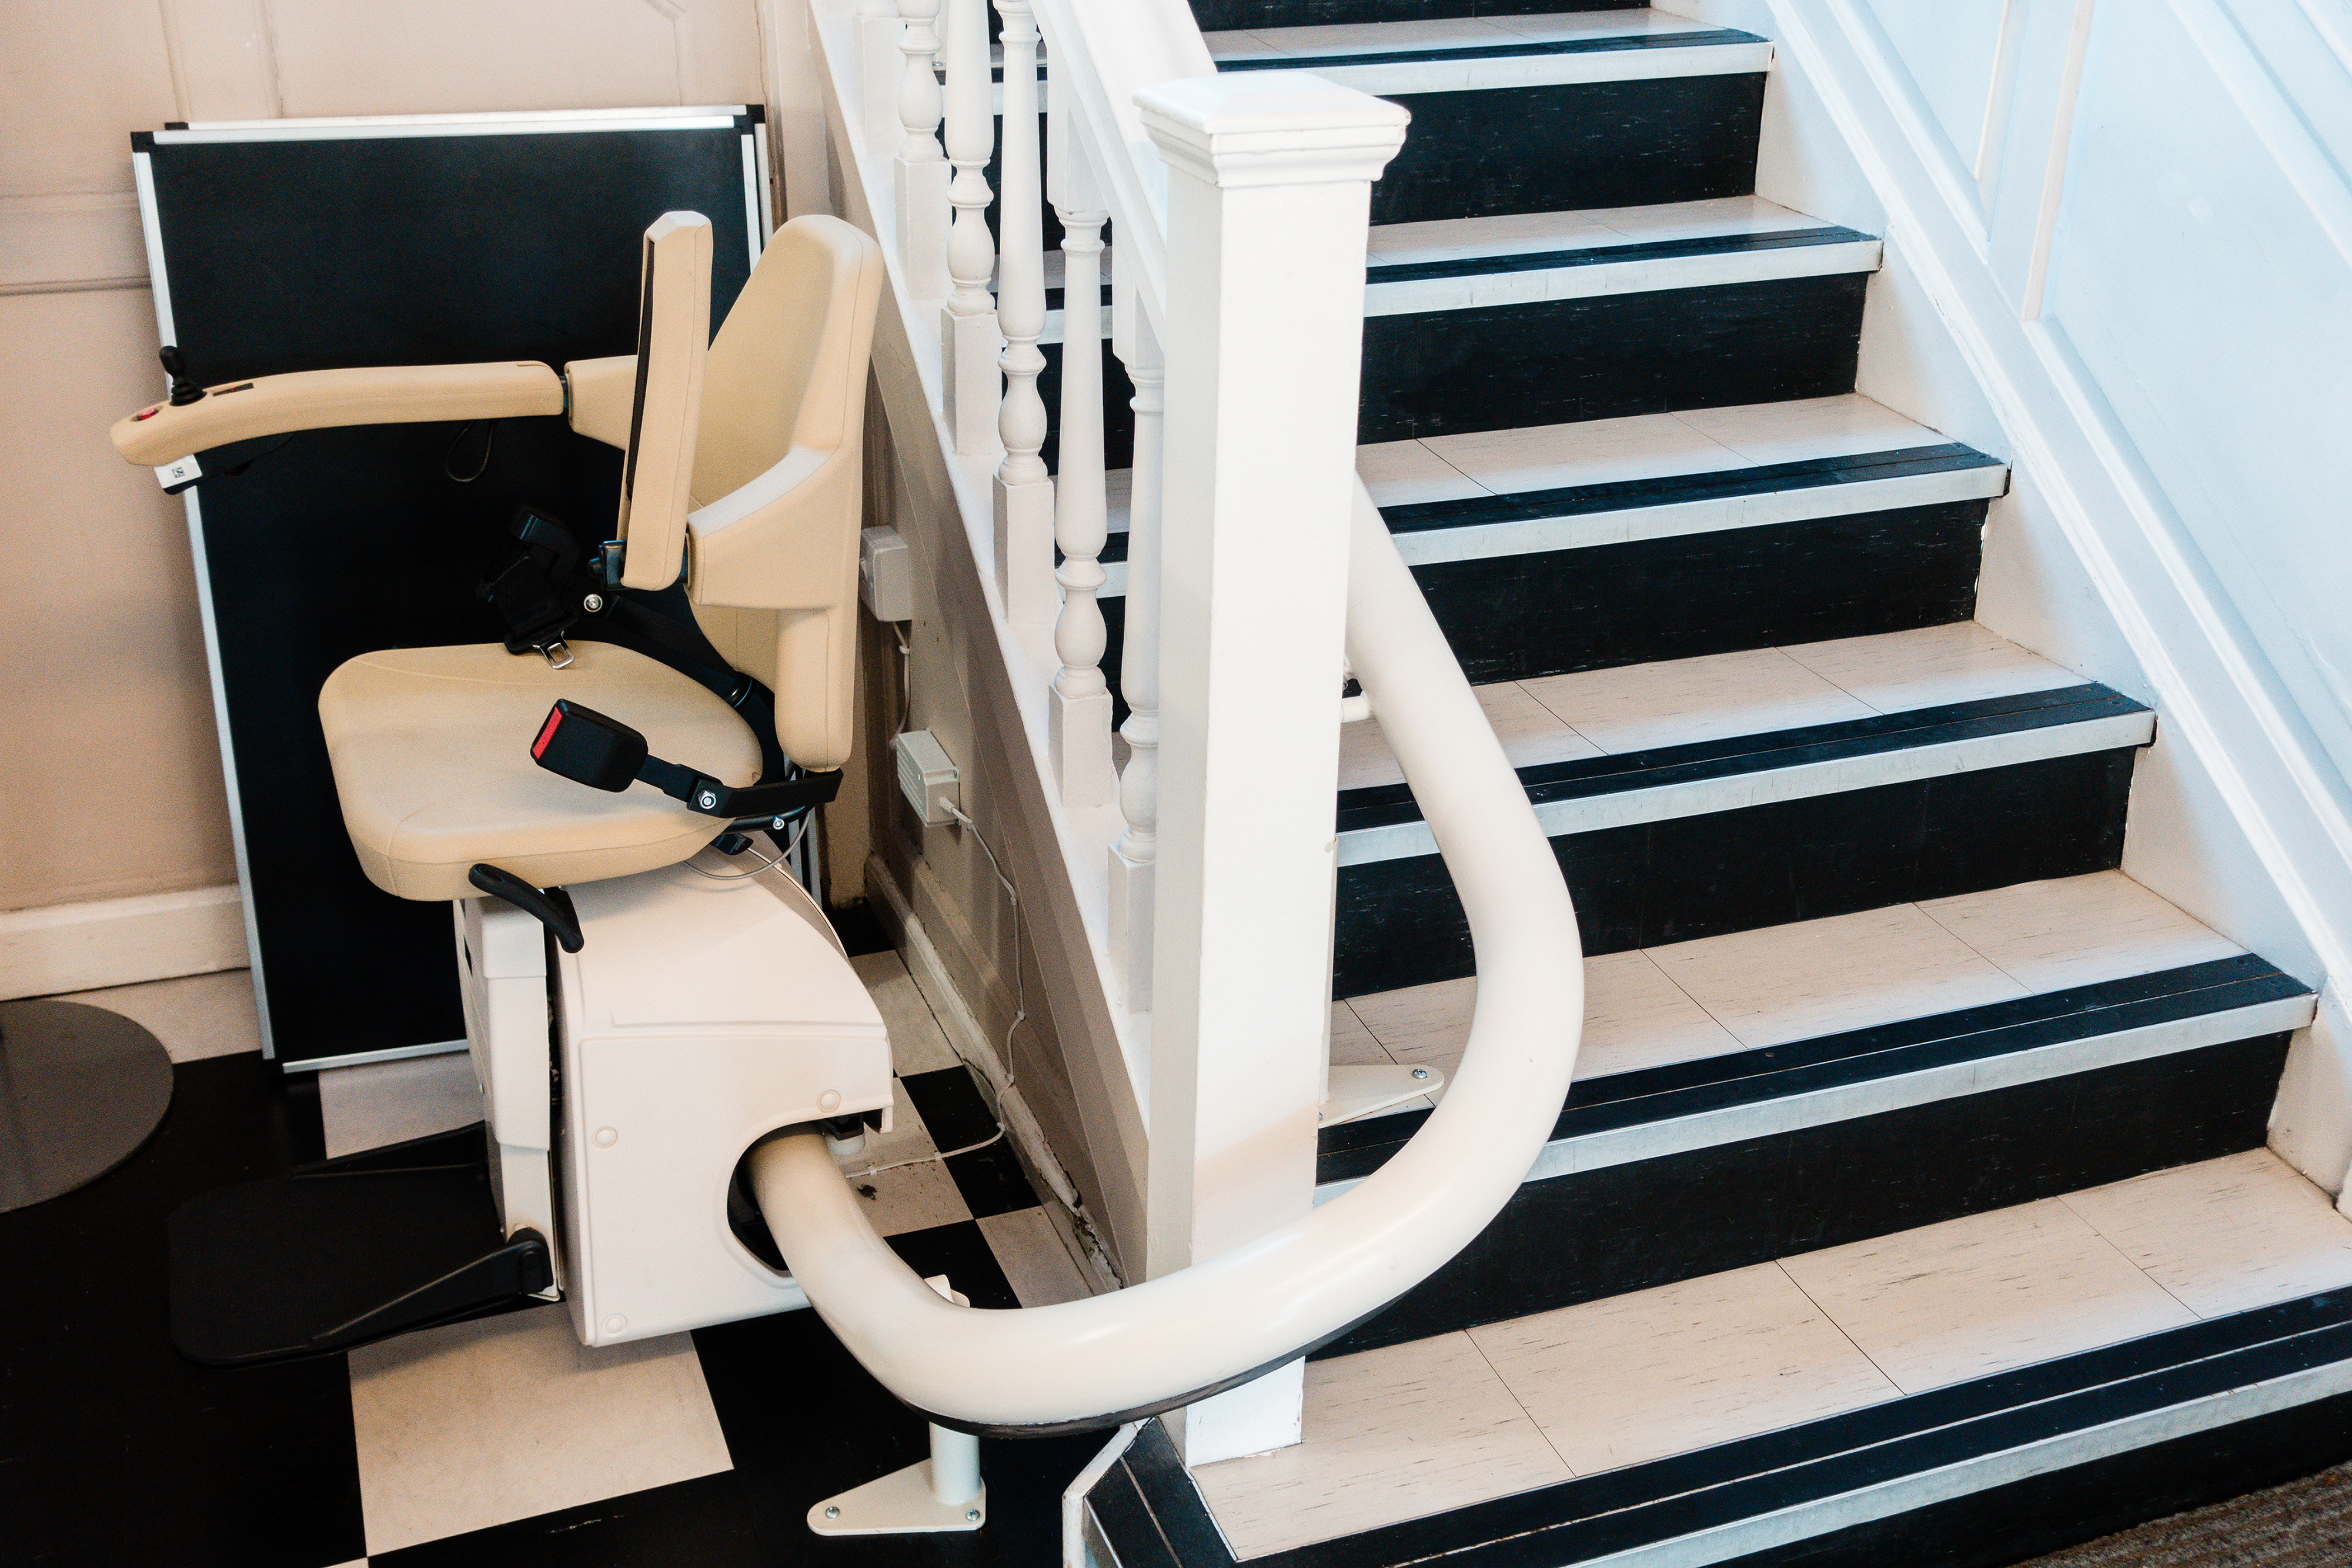 White stairlift on staircase for disable